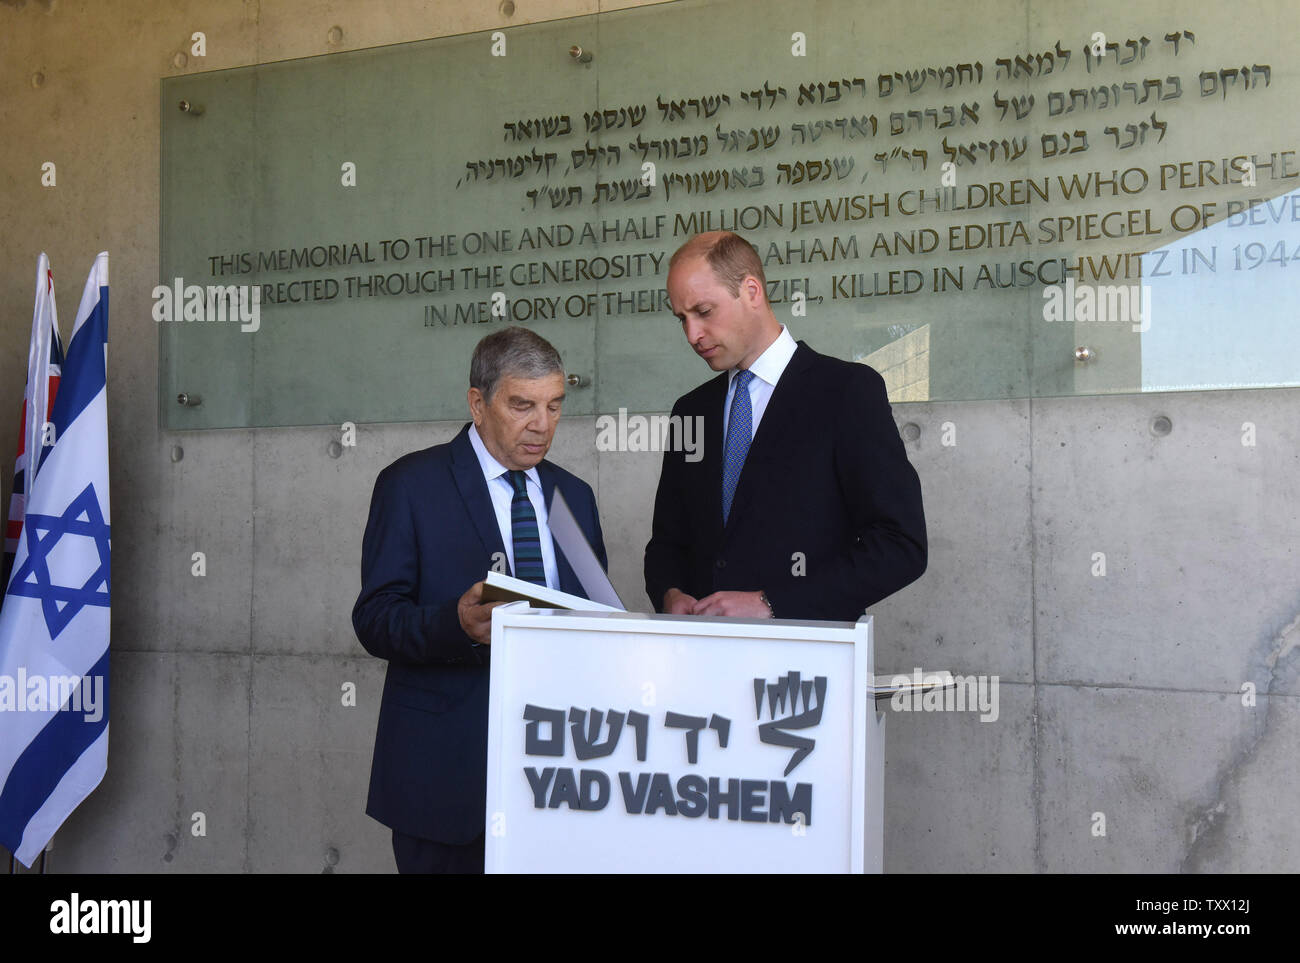 Prince William, the Duke of Cambridge, is given a book by the Chairman of Yad Vashem Avner Shalev, after signing the guest book of Yad Vashem, the World Holocaust Remembrance Center, in Jerusalem, Israel, June 26, 2018.  Photo by Debbie Hill/UPI - Stock Image